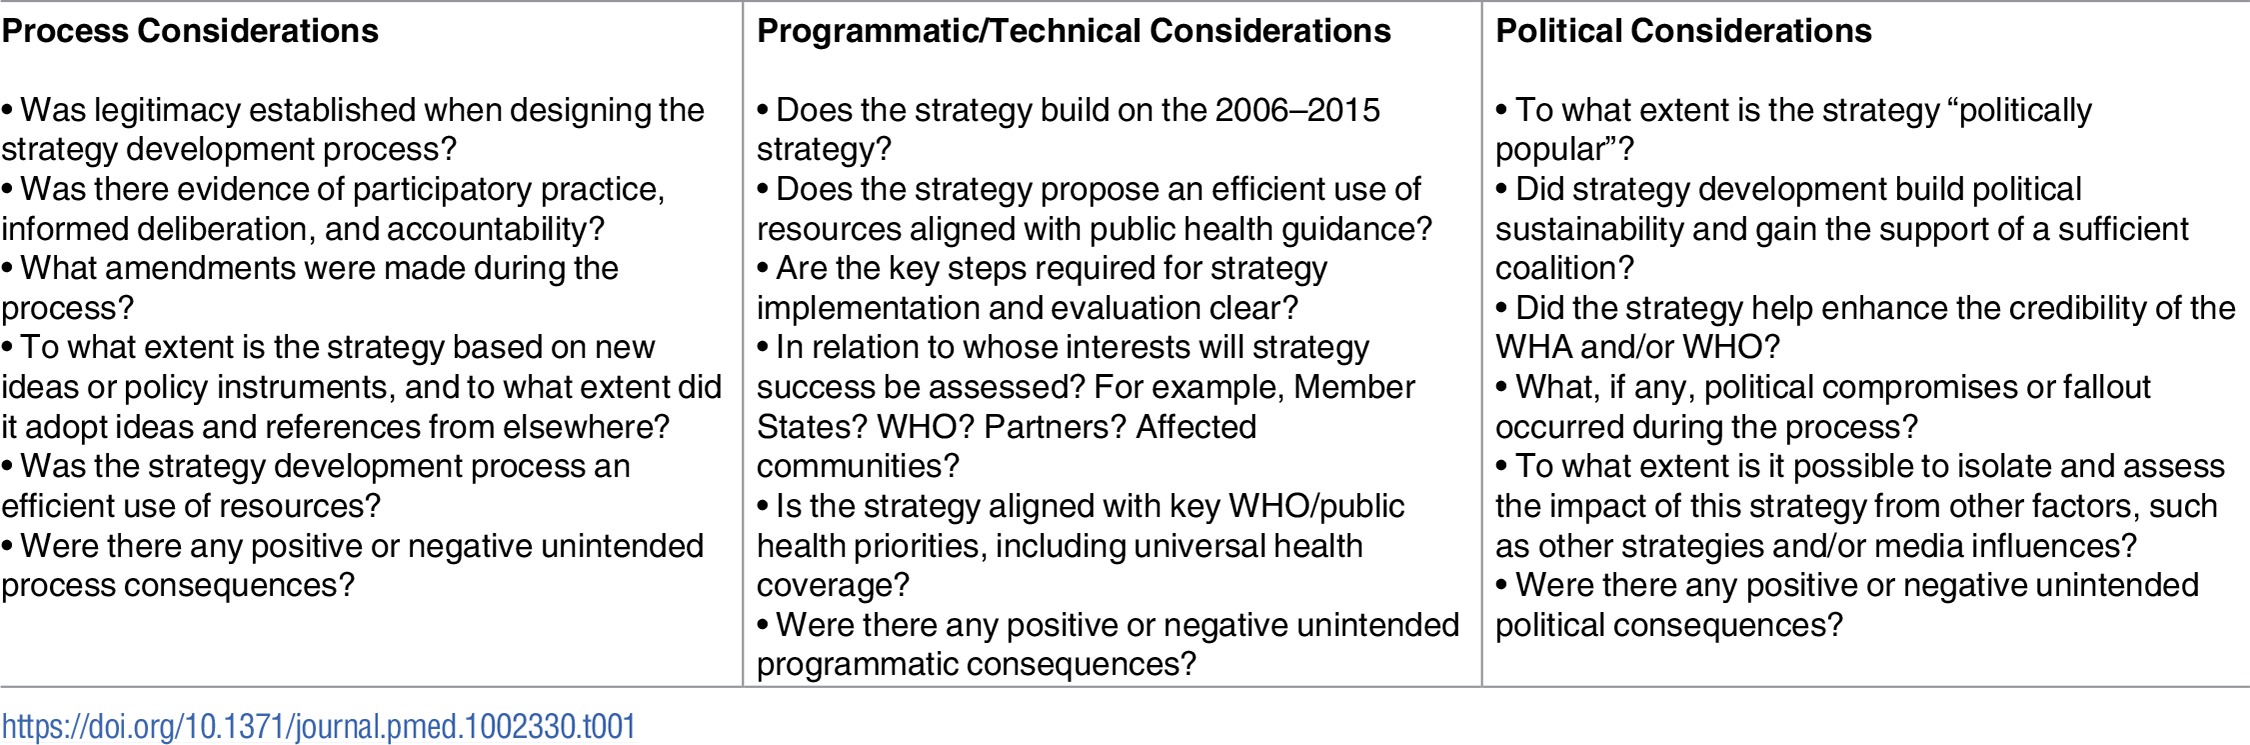 Evaluation questions adapted from the 9 indicators proposed by Marsh and McConnell's <i>A framework for establishing policy success</i>.